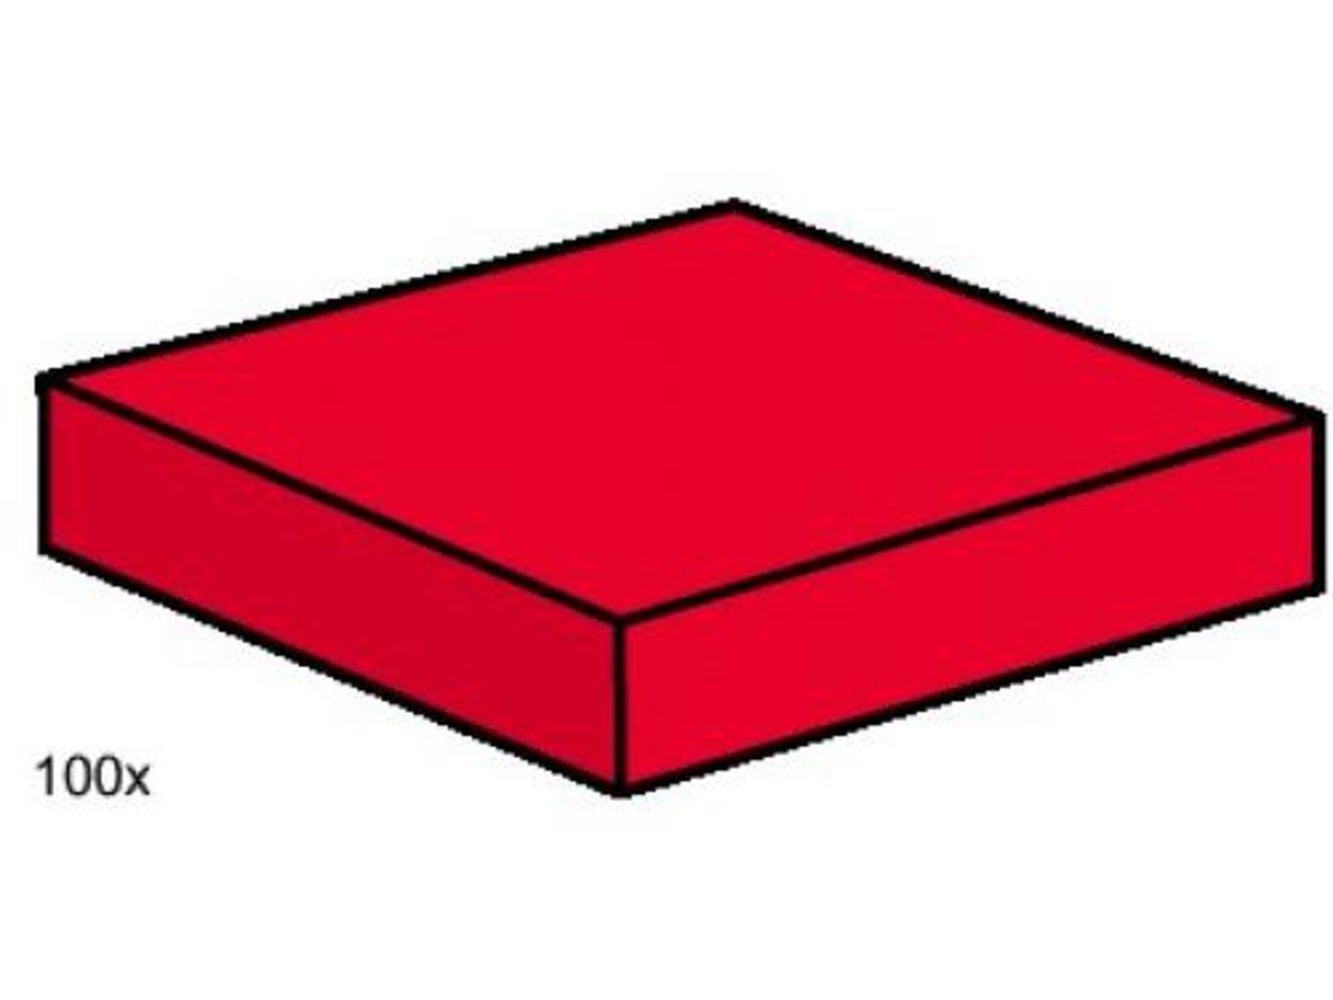 2 x 2 Red Smooth Tiles